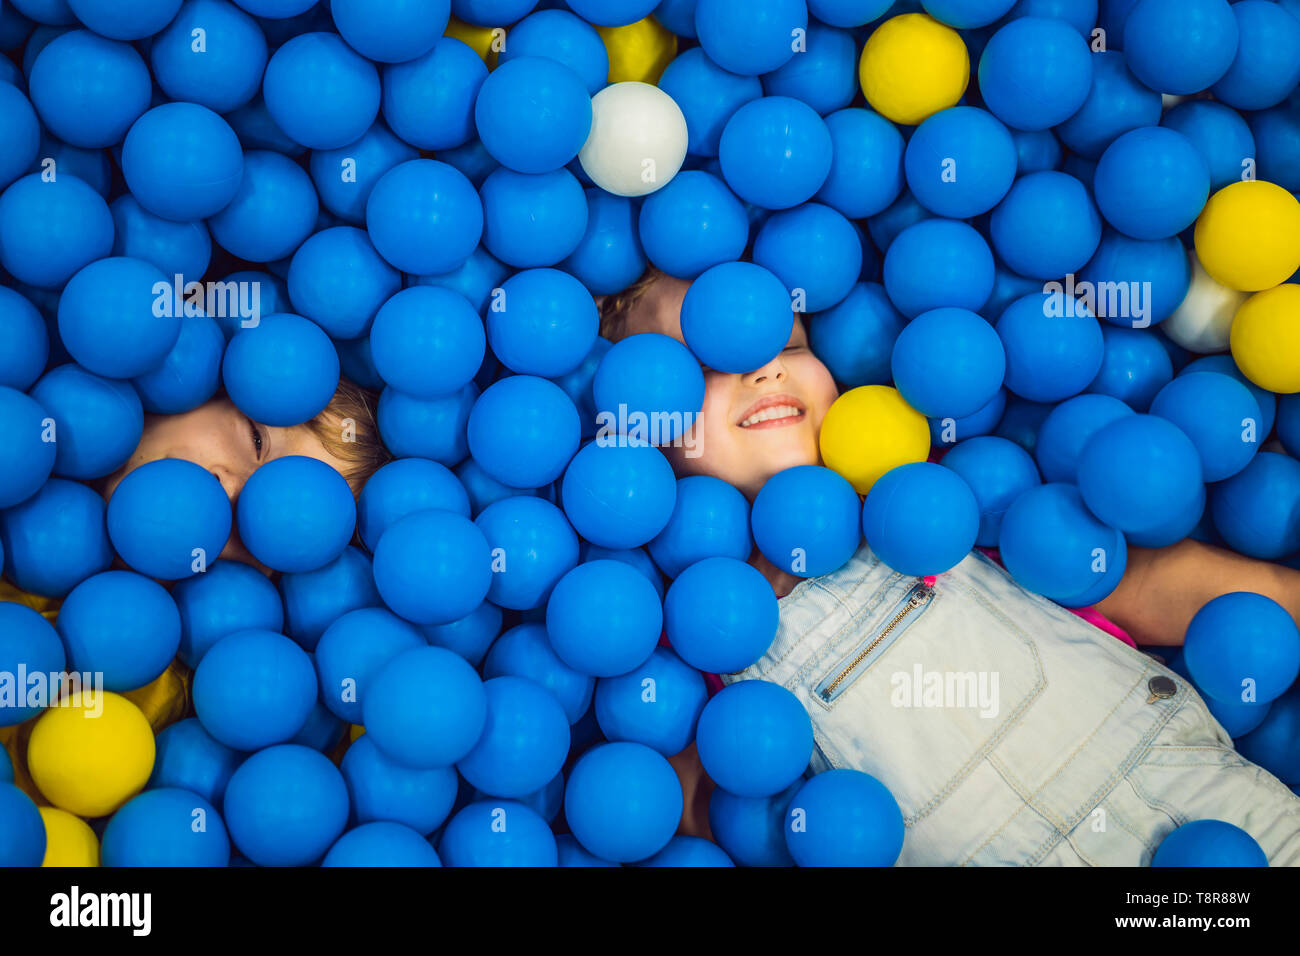 Child playing in ball pit. Colorful toys for kids. Kindergarten or preschool play room. Toddler kid at day care indoor playground. Balls pool for Stock Photo